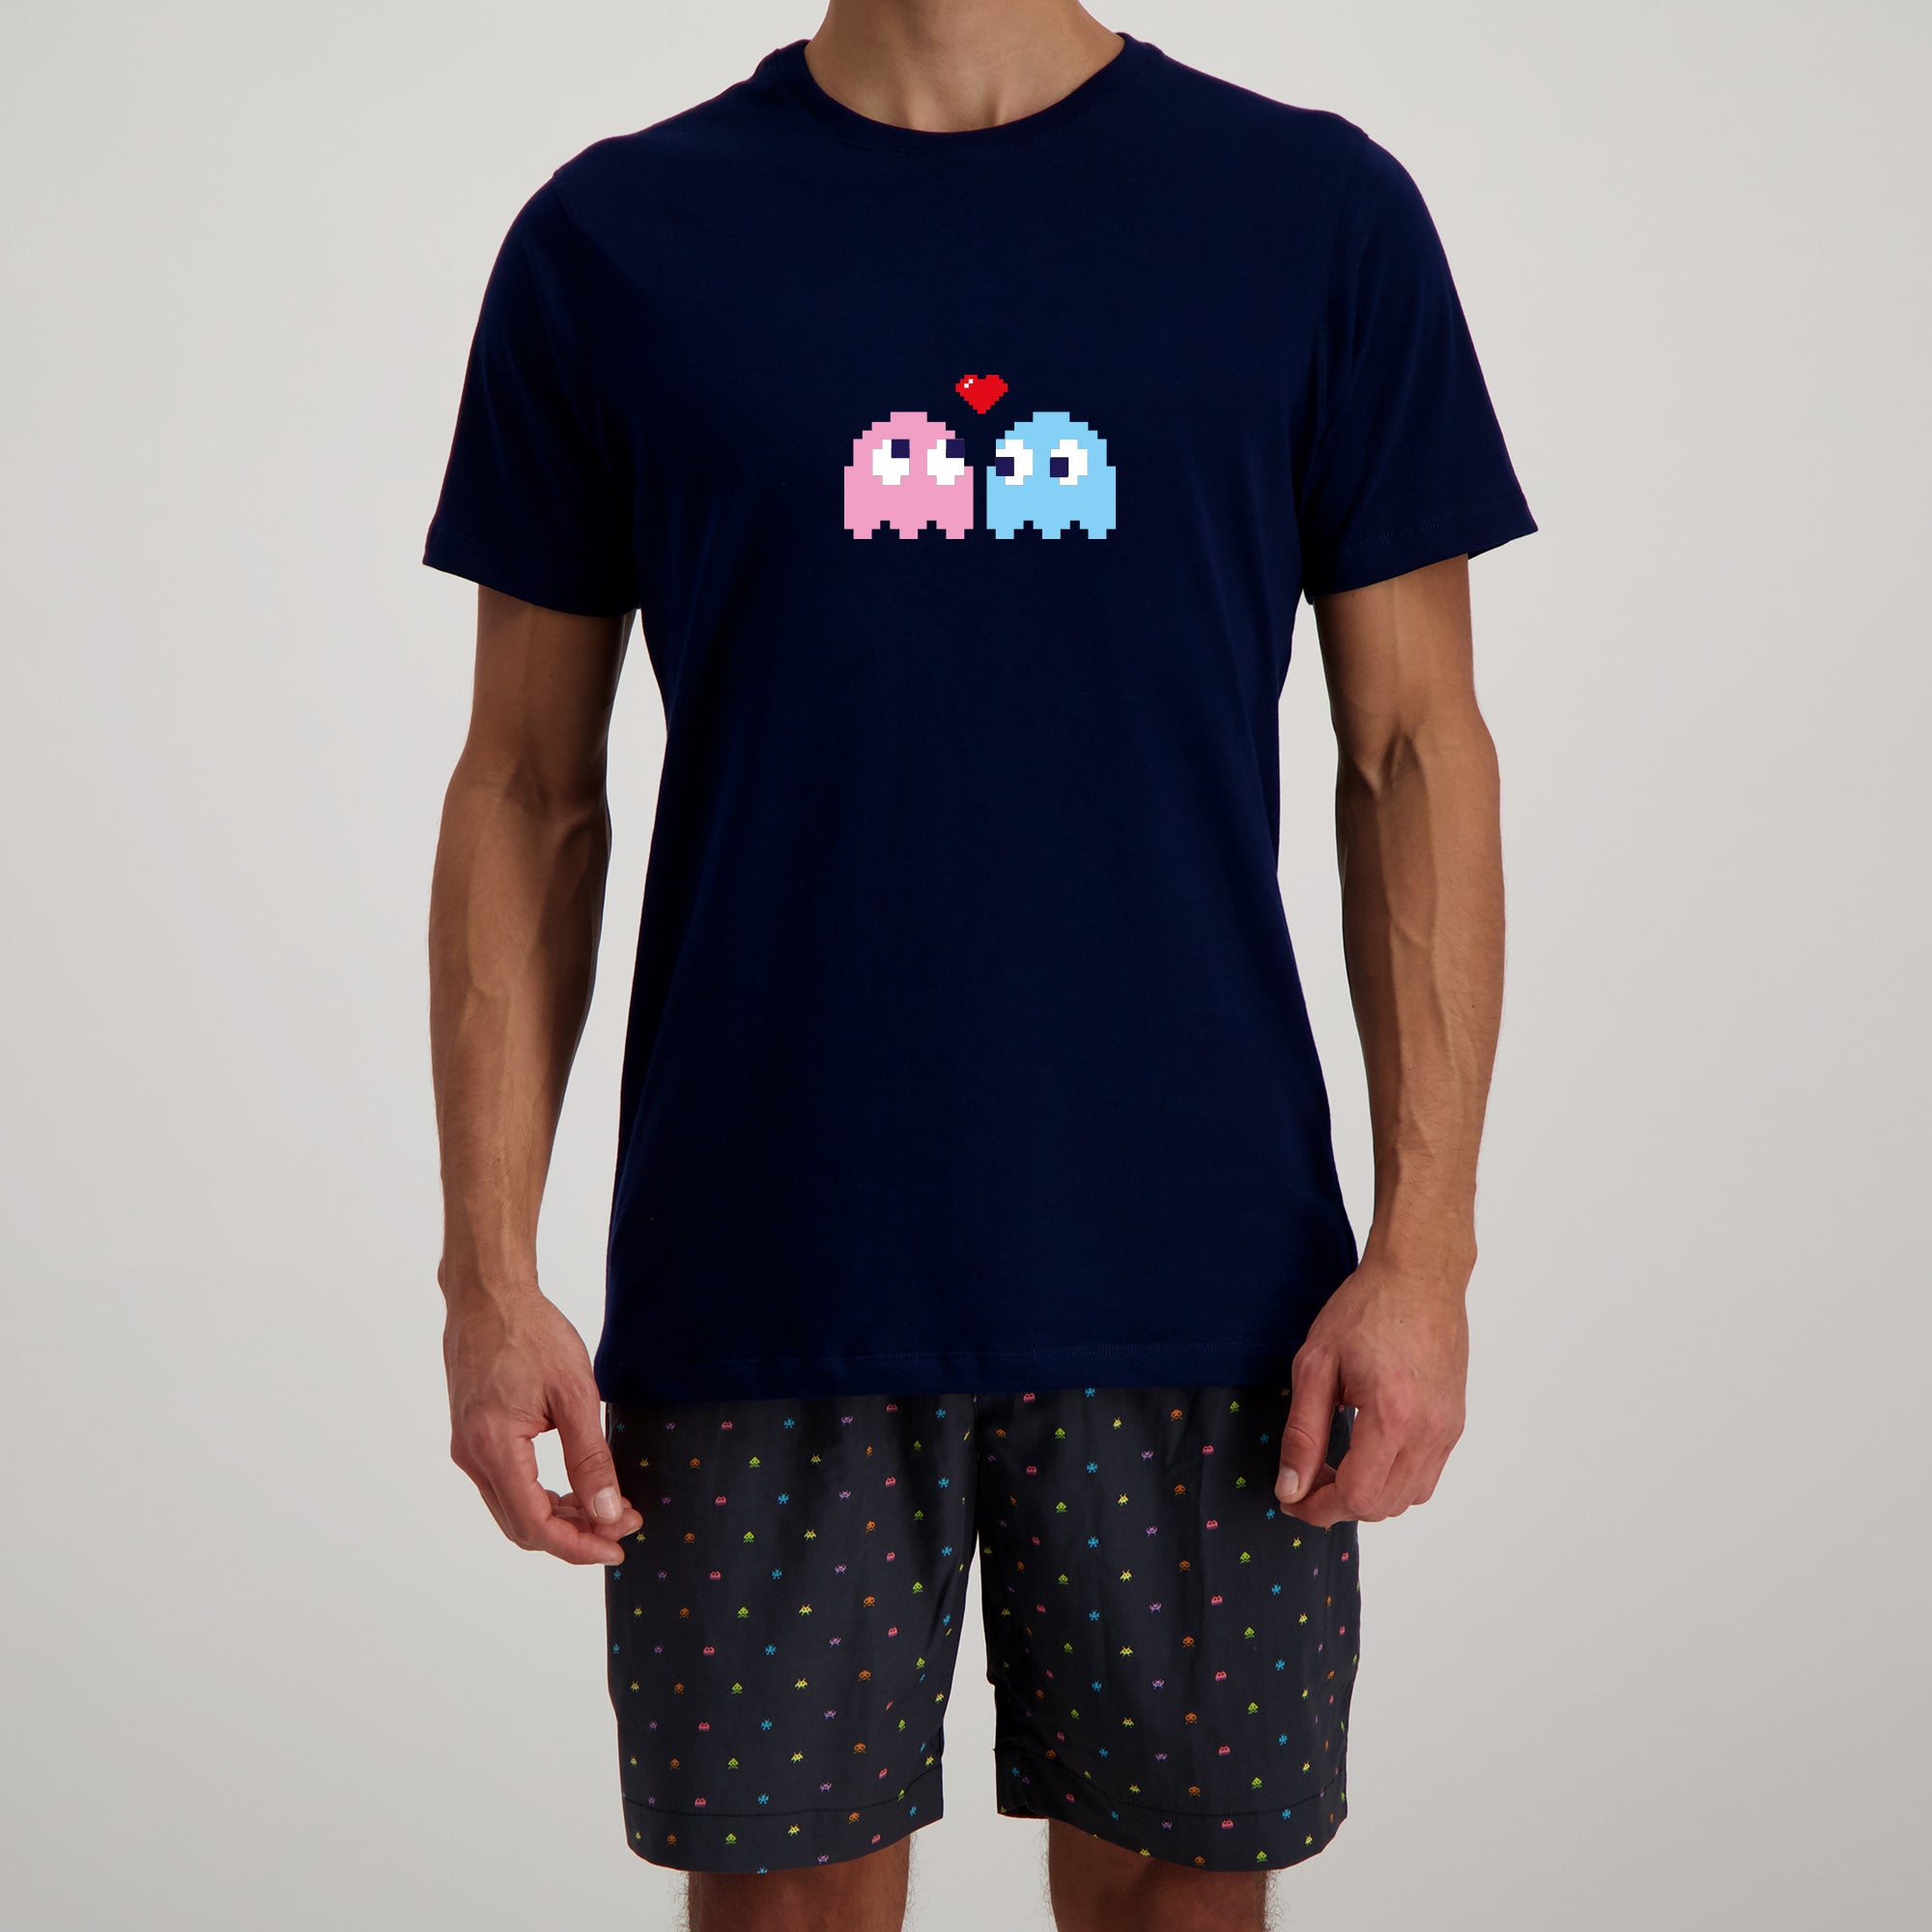 T-Shirt Navy with P-Ghost - Woodstock Laundry